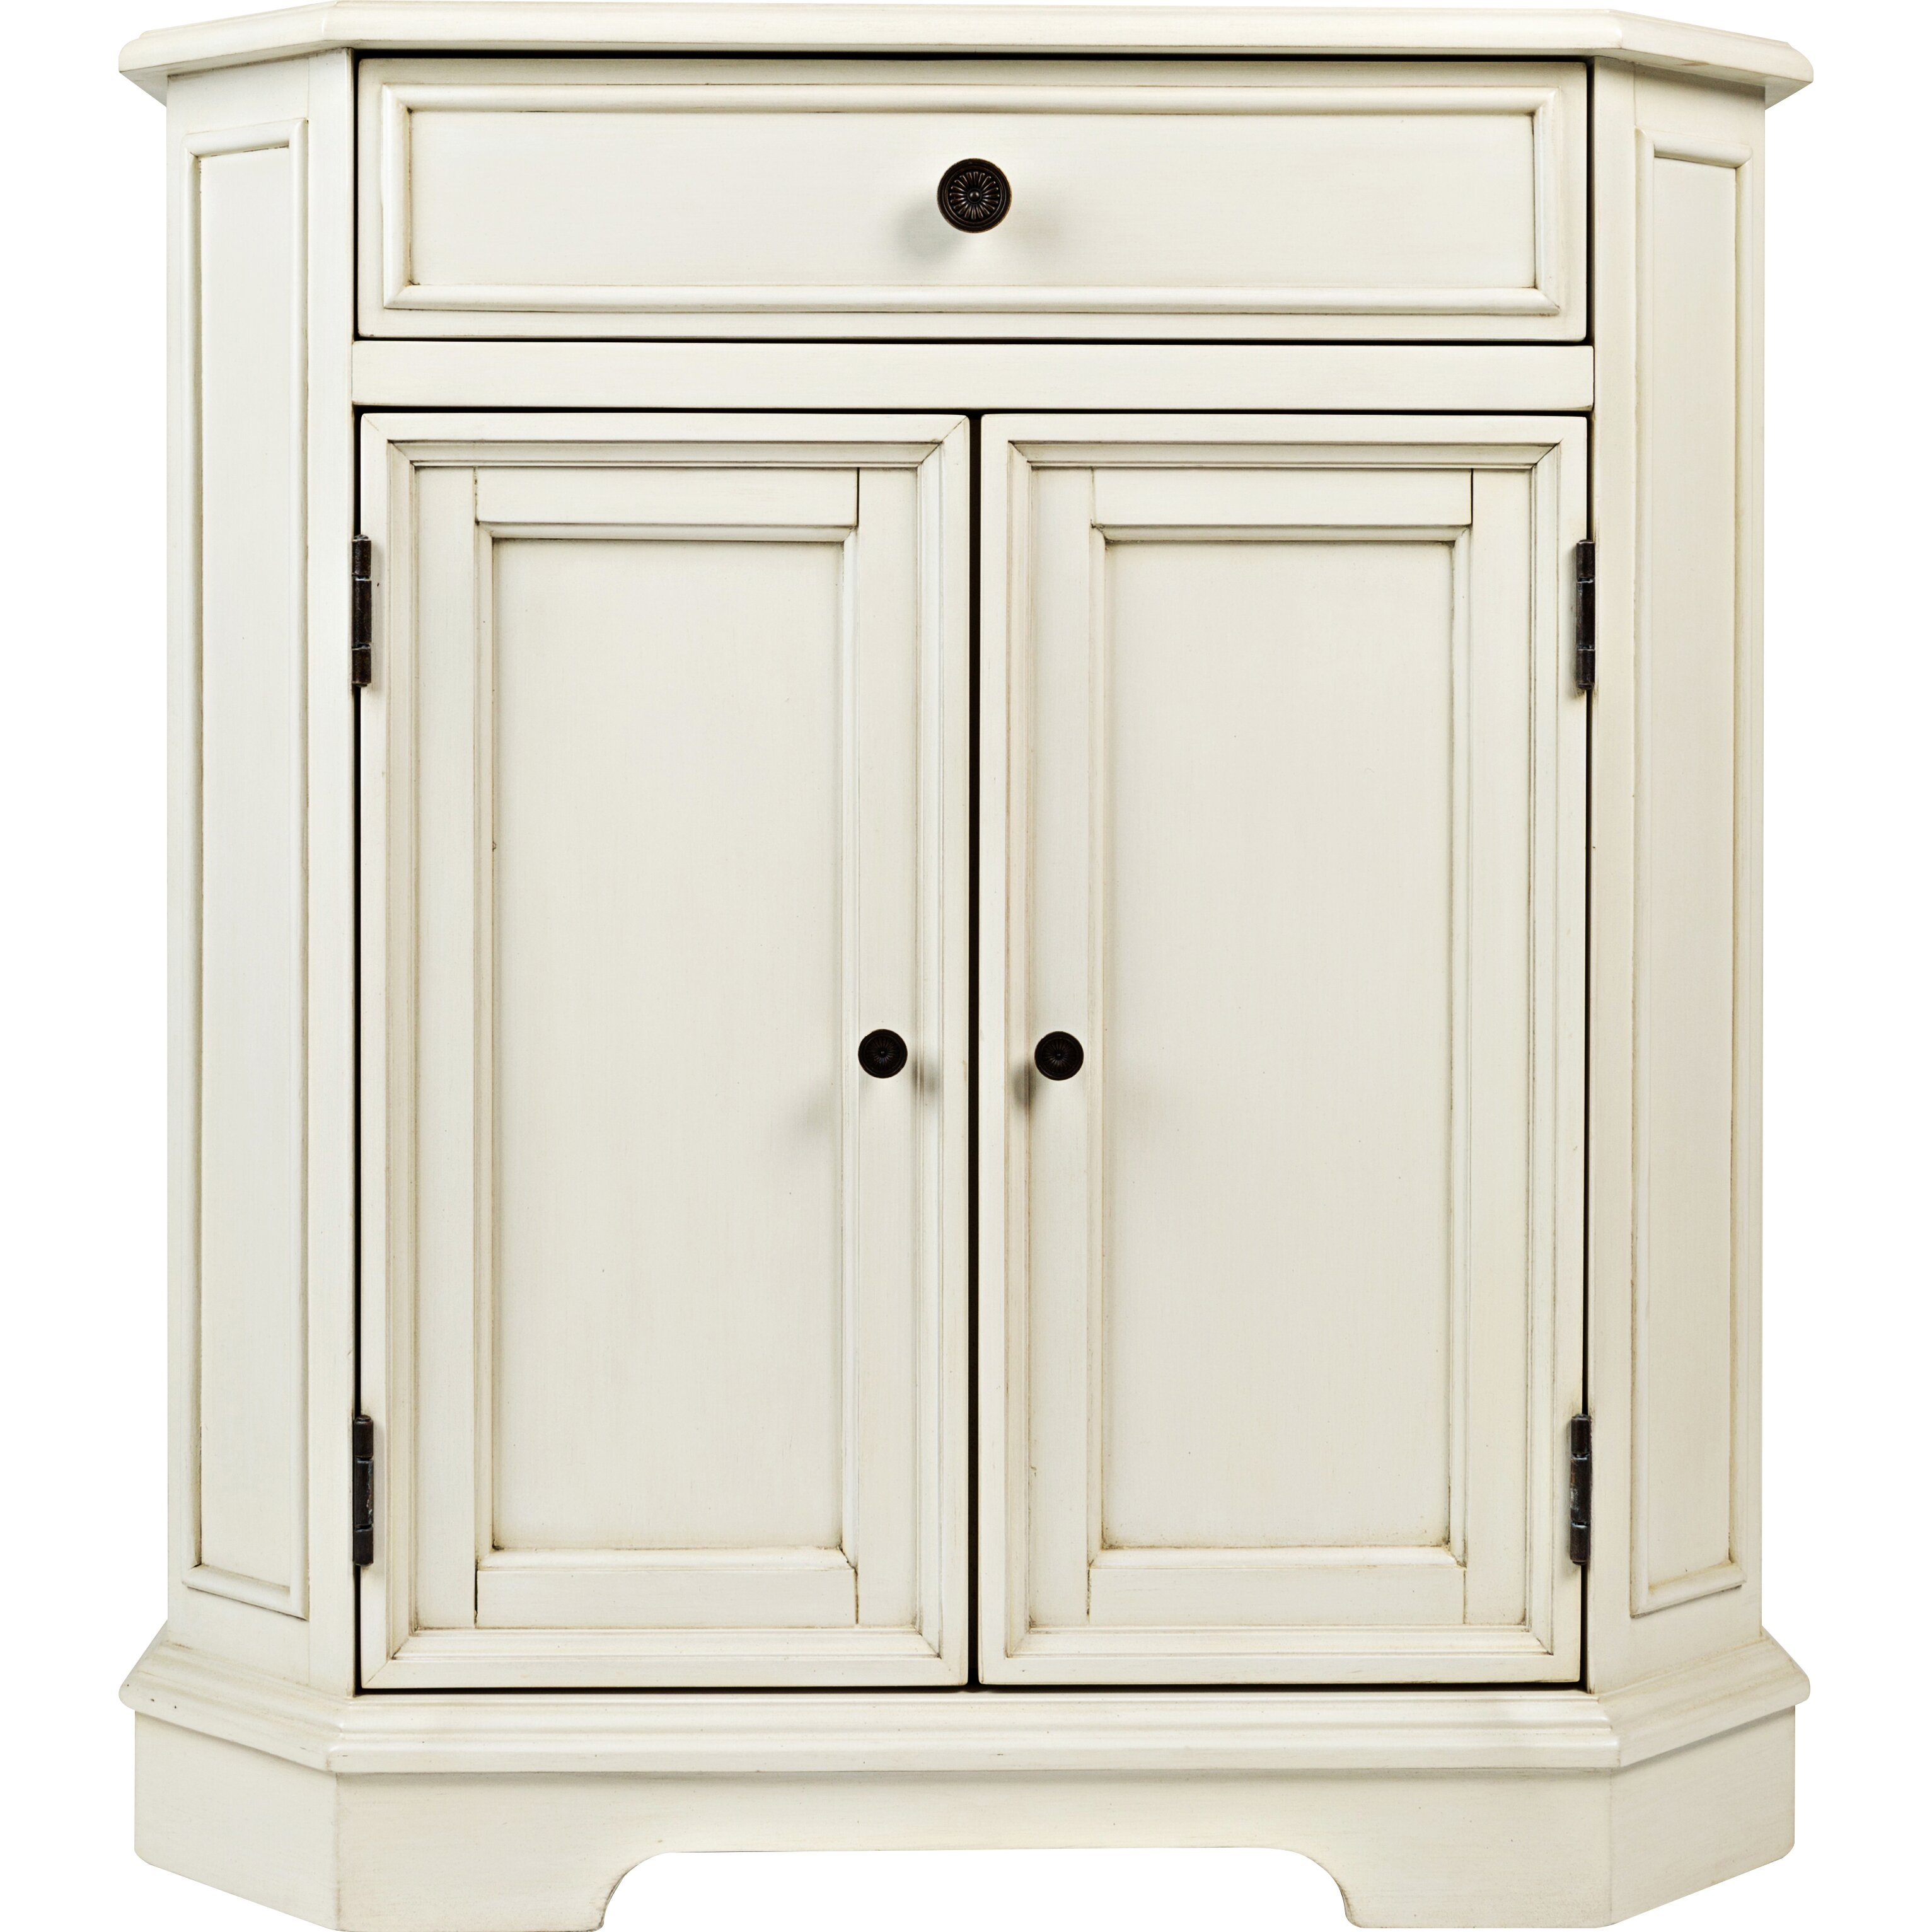 Beachcrest home cuyler accent cabinet reviews - Wayfair furniture bathroom vanities ...